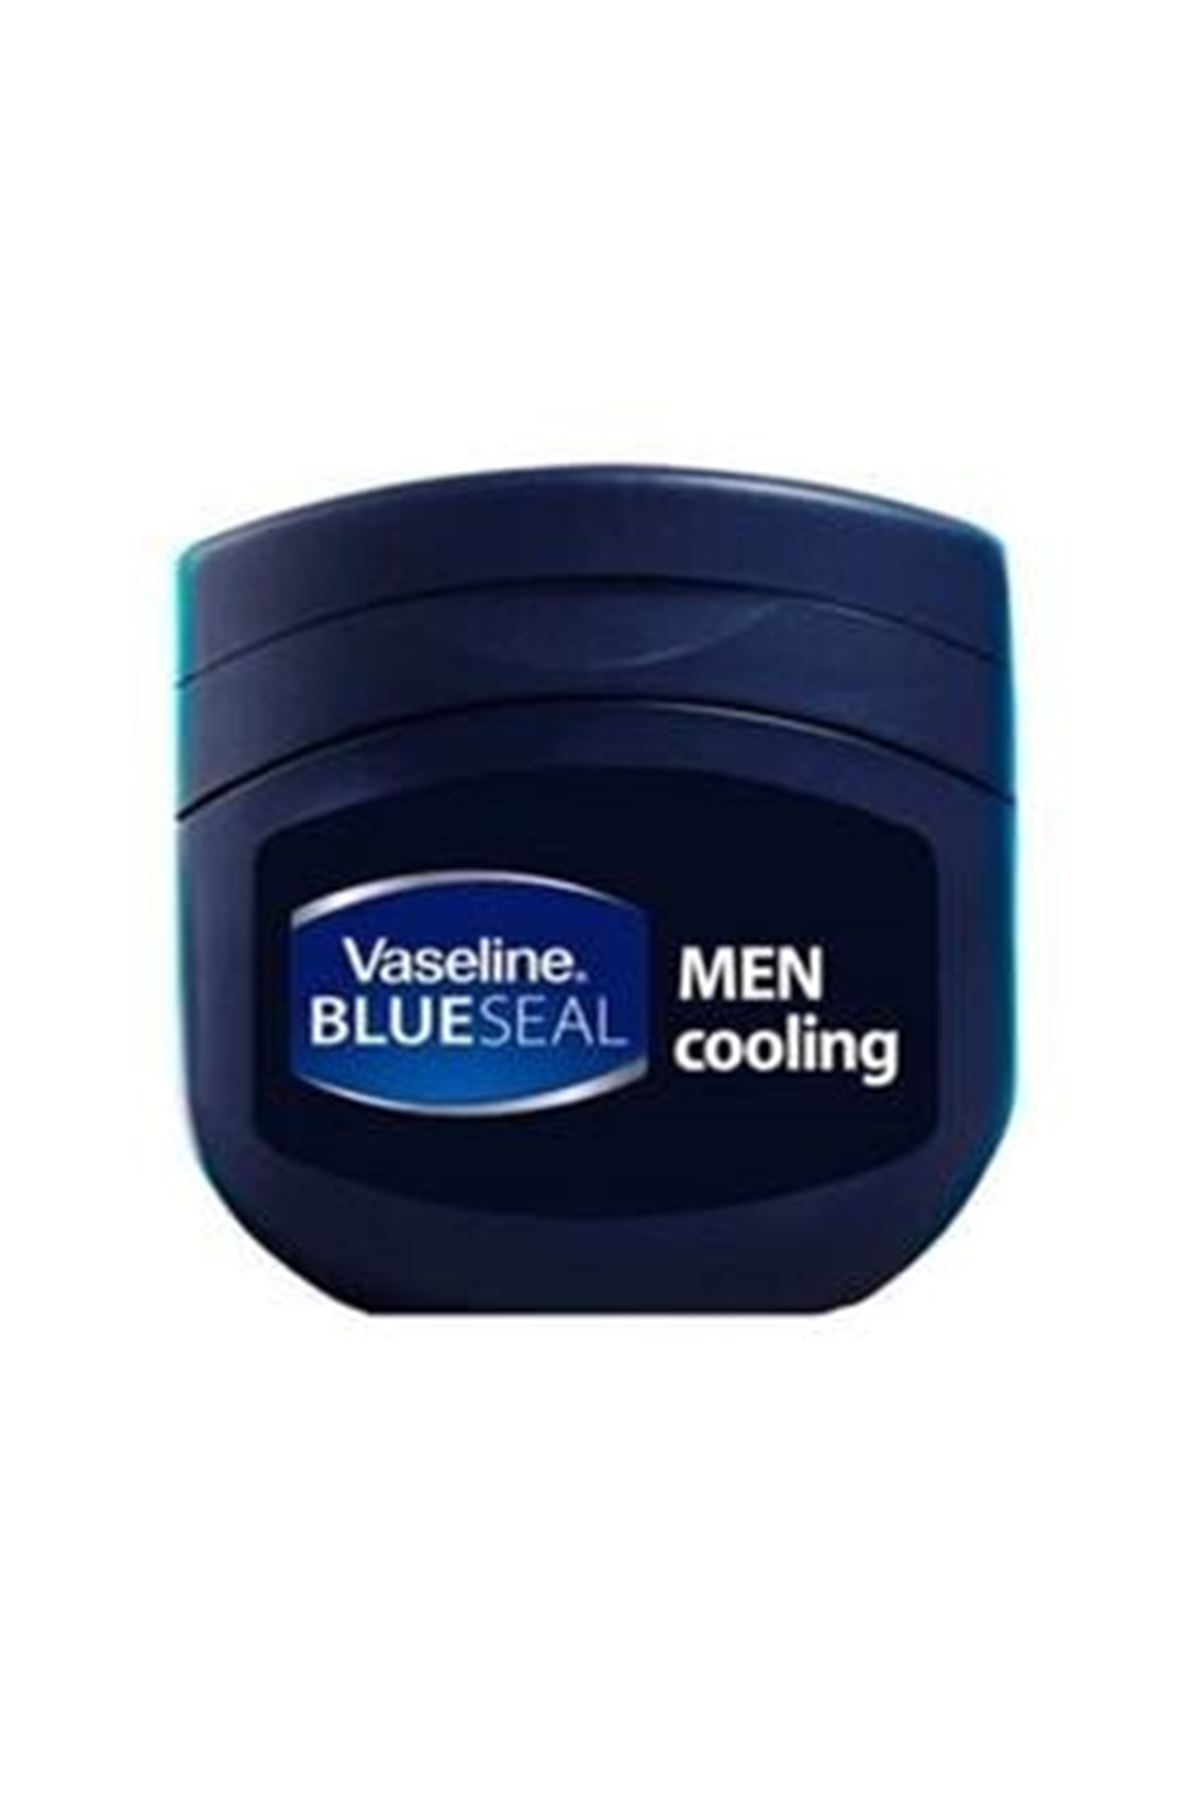 Vaseline Blueseal Men Cooling Jel Krem 100 ml